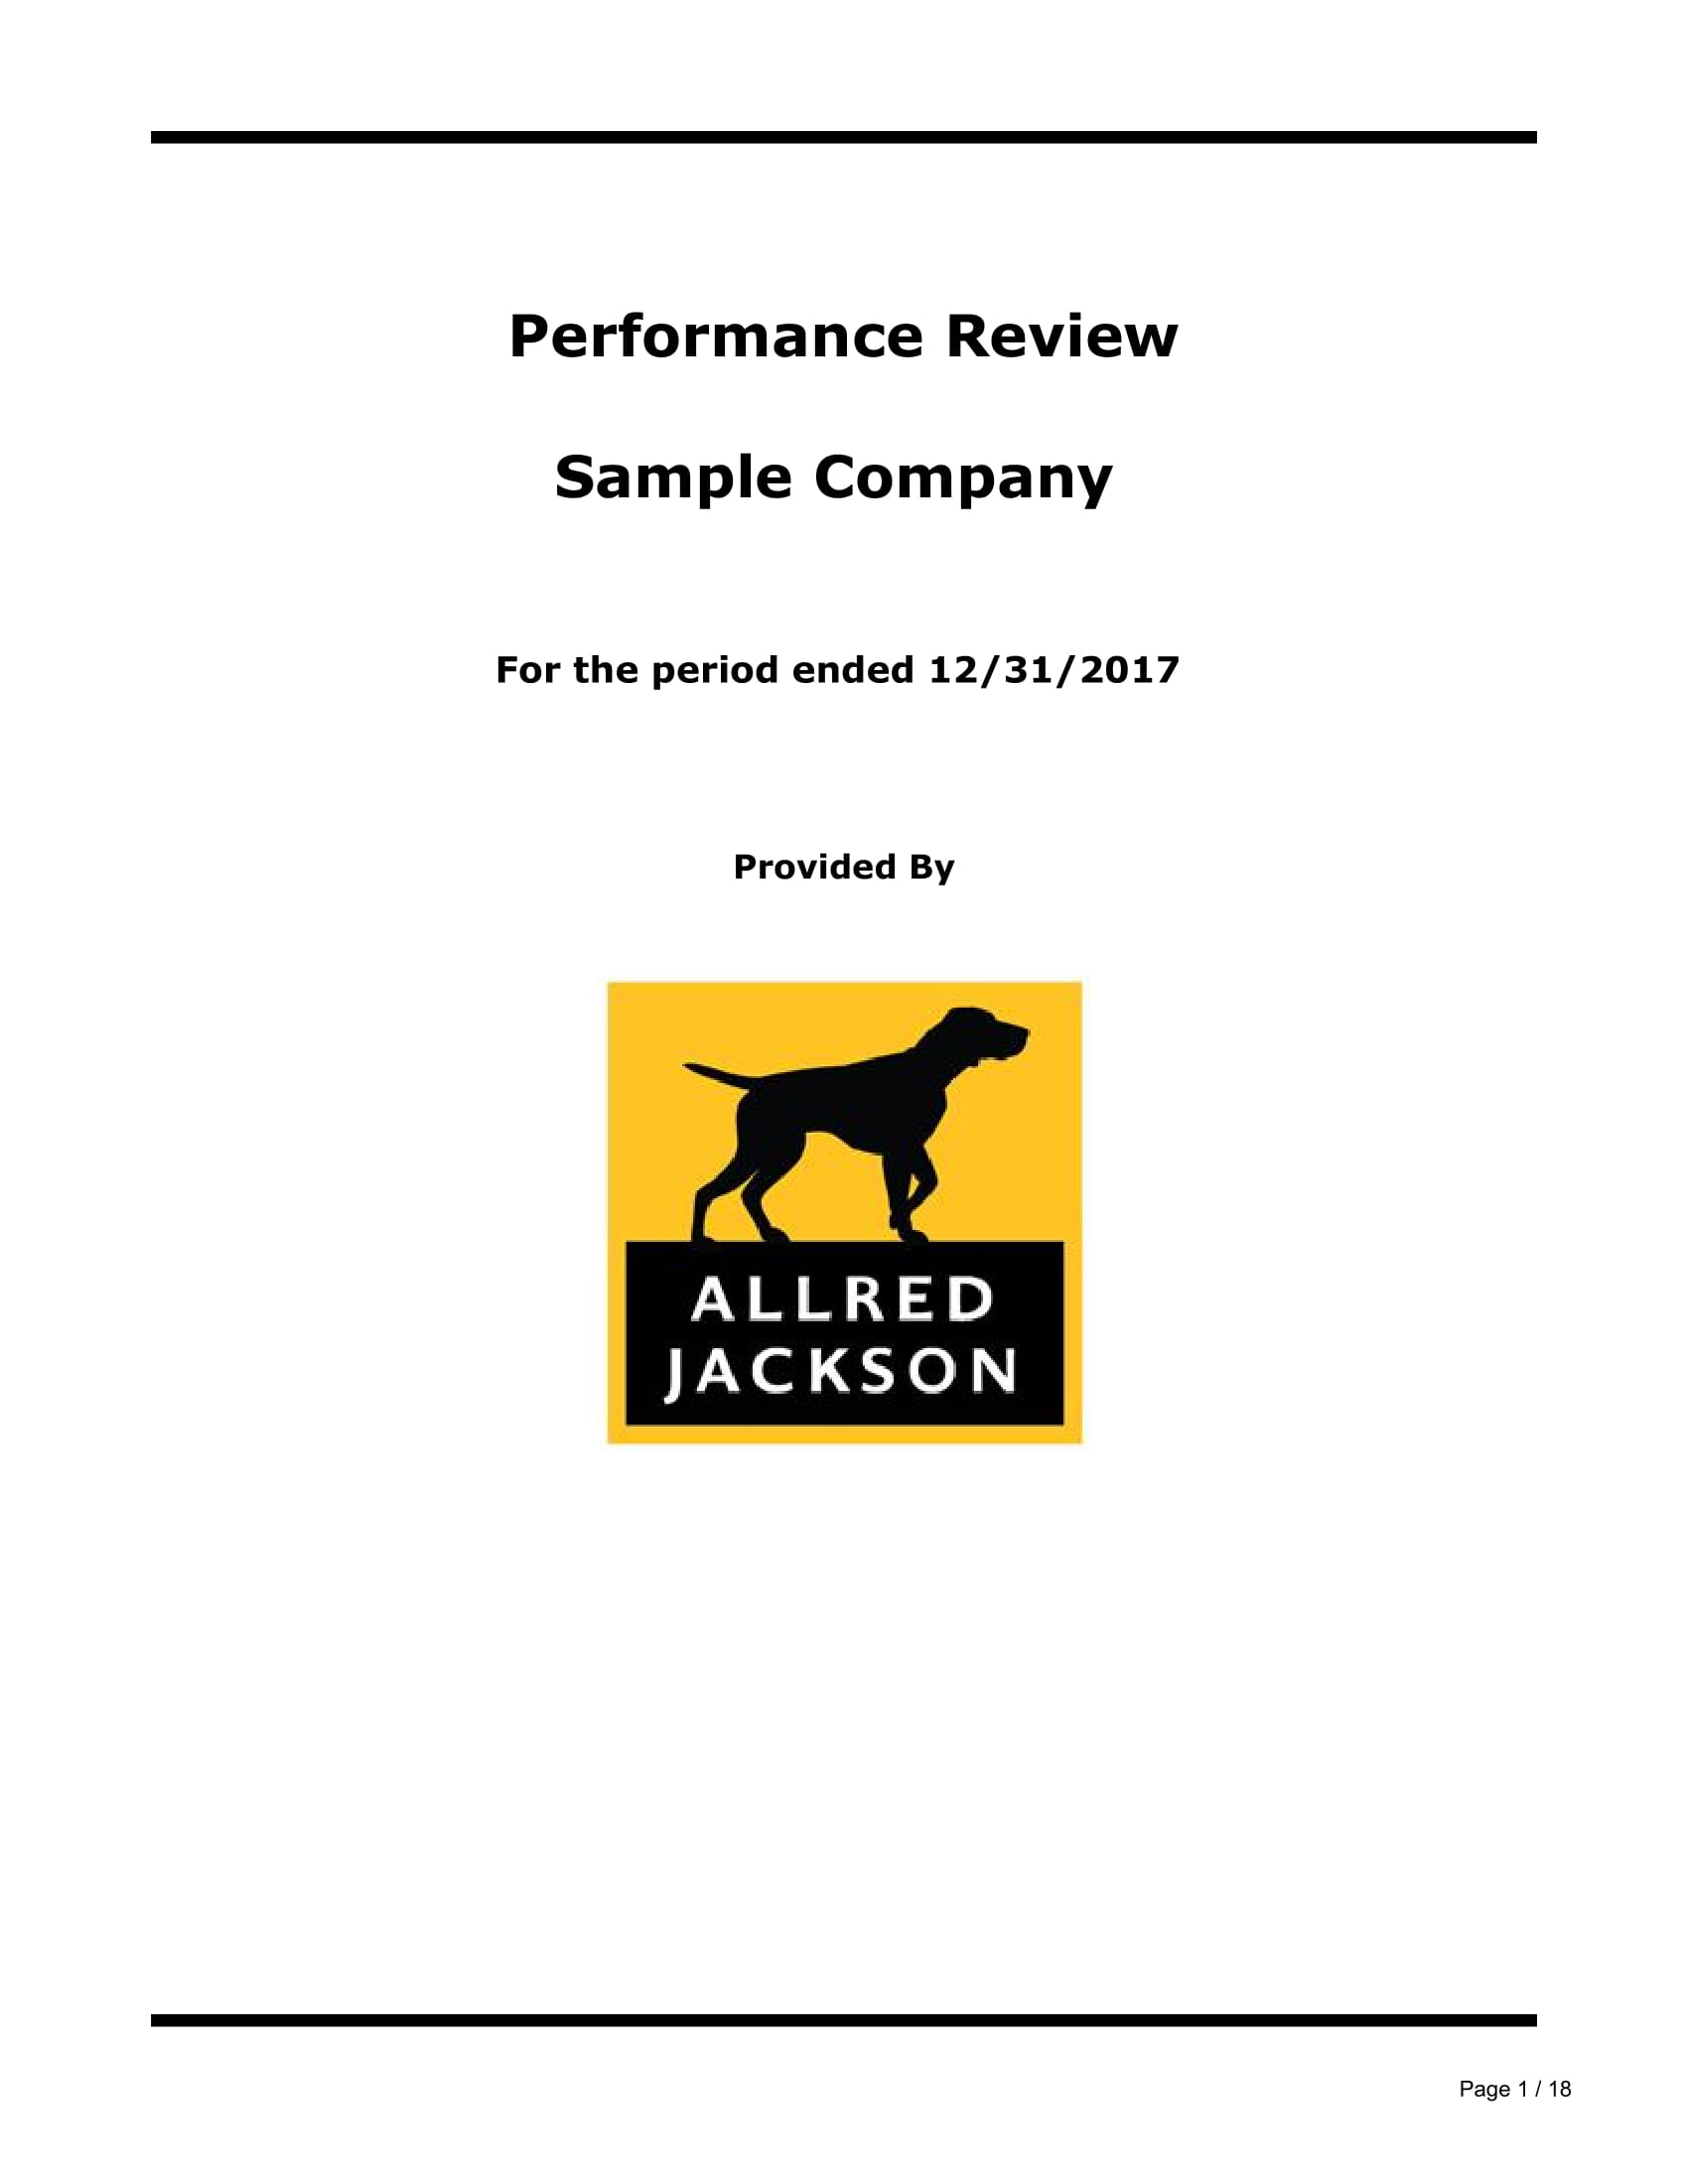 company performance review report example 01